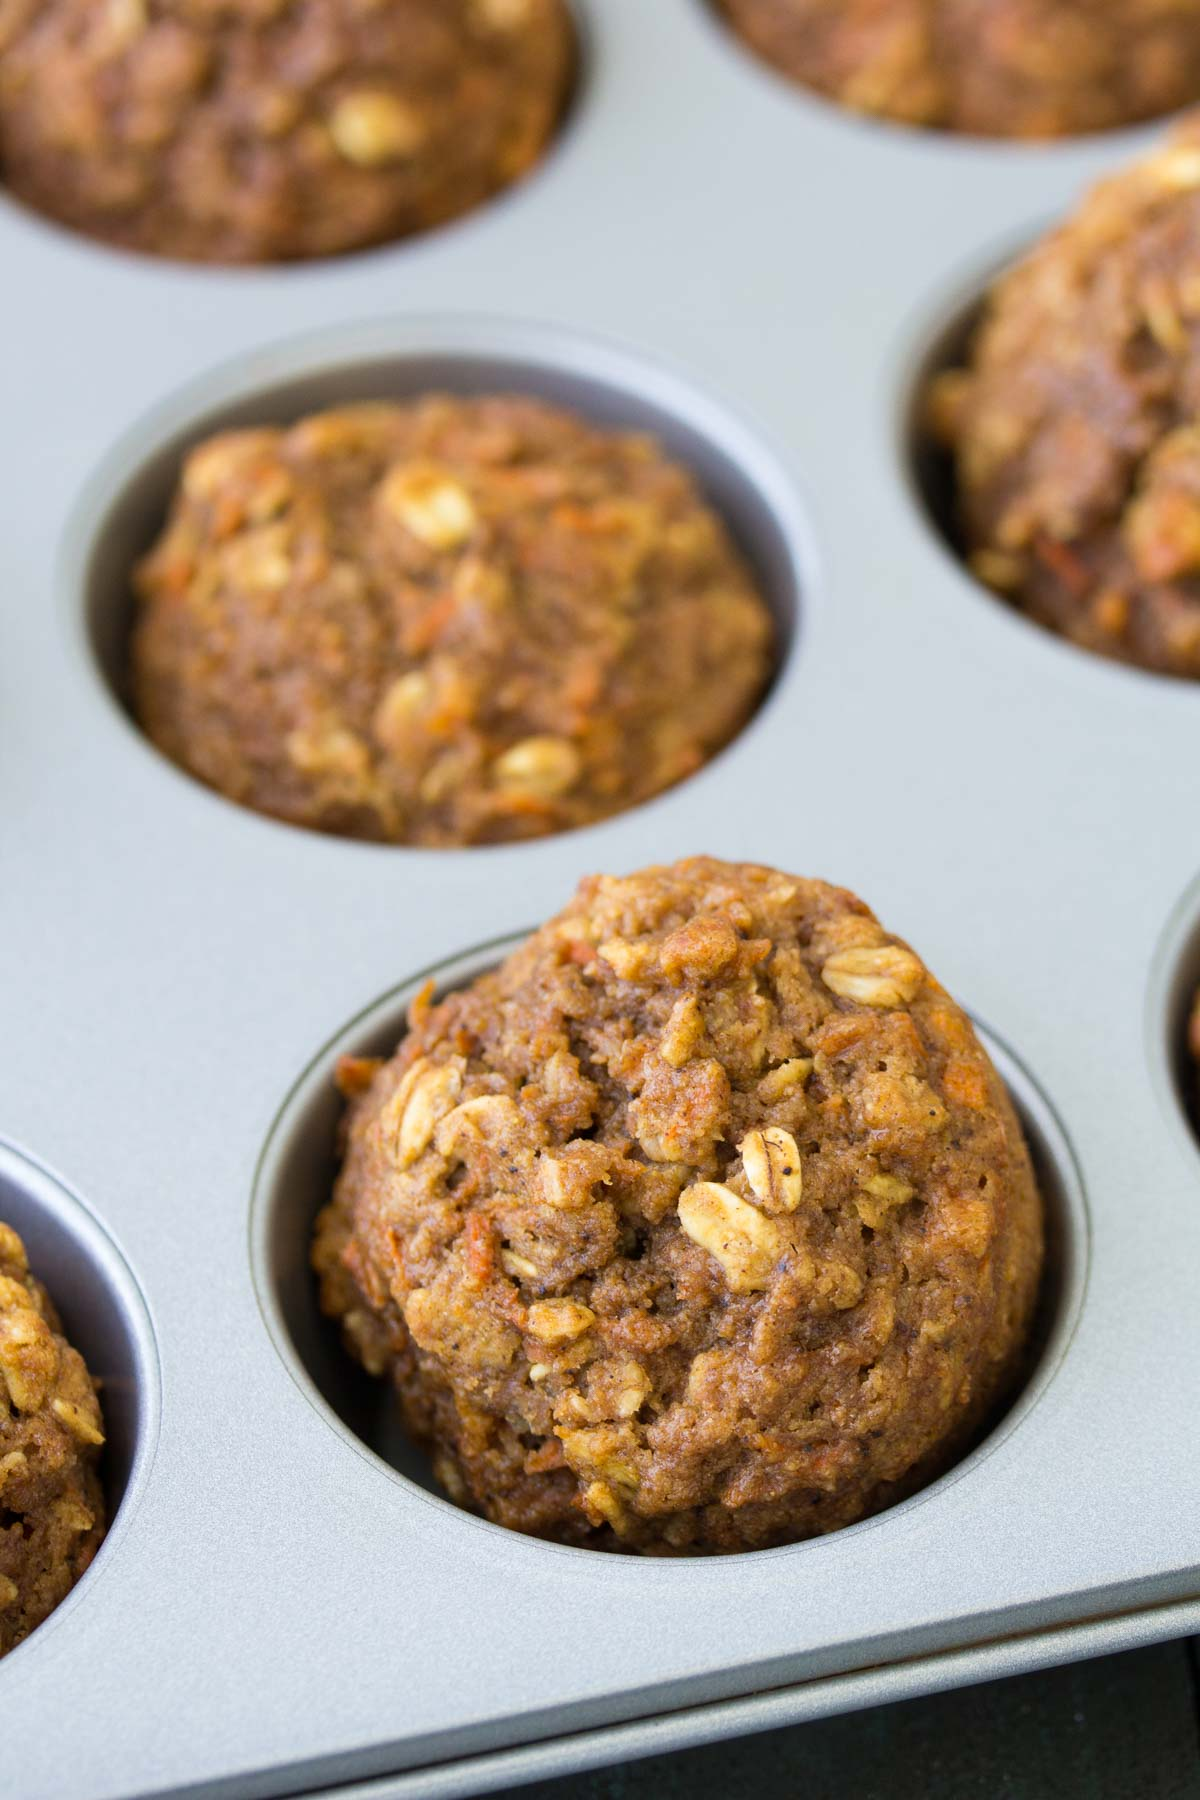 cake cake muffins in muffin pan from oven